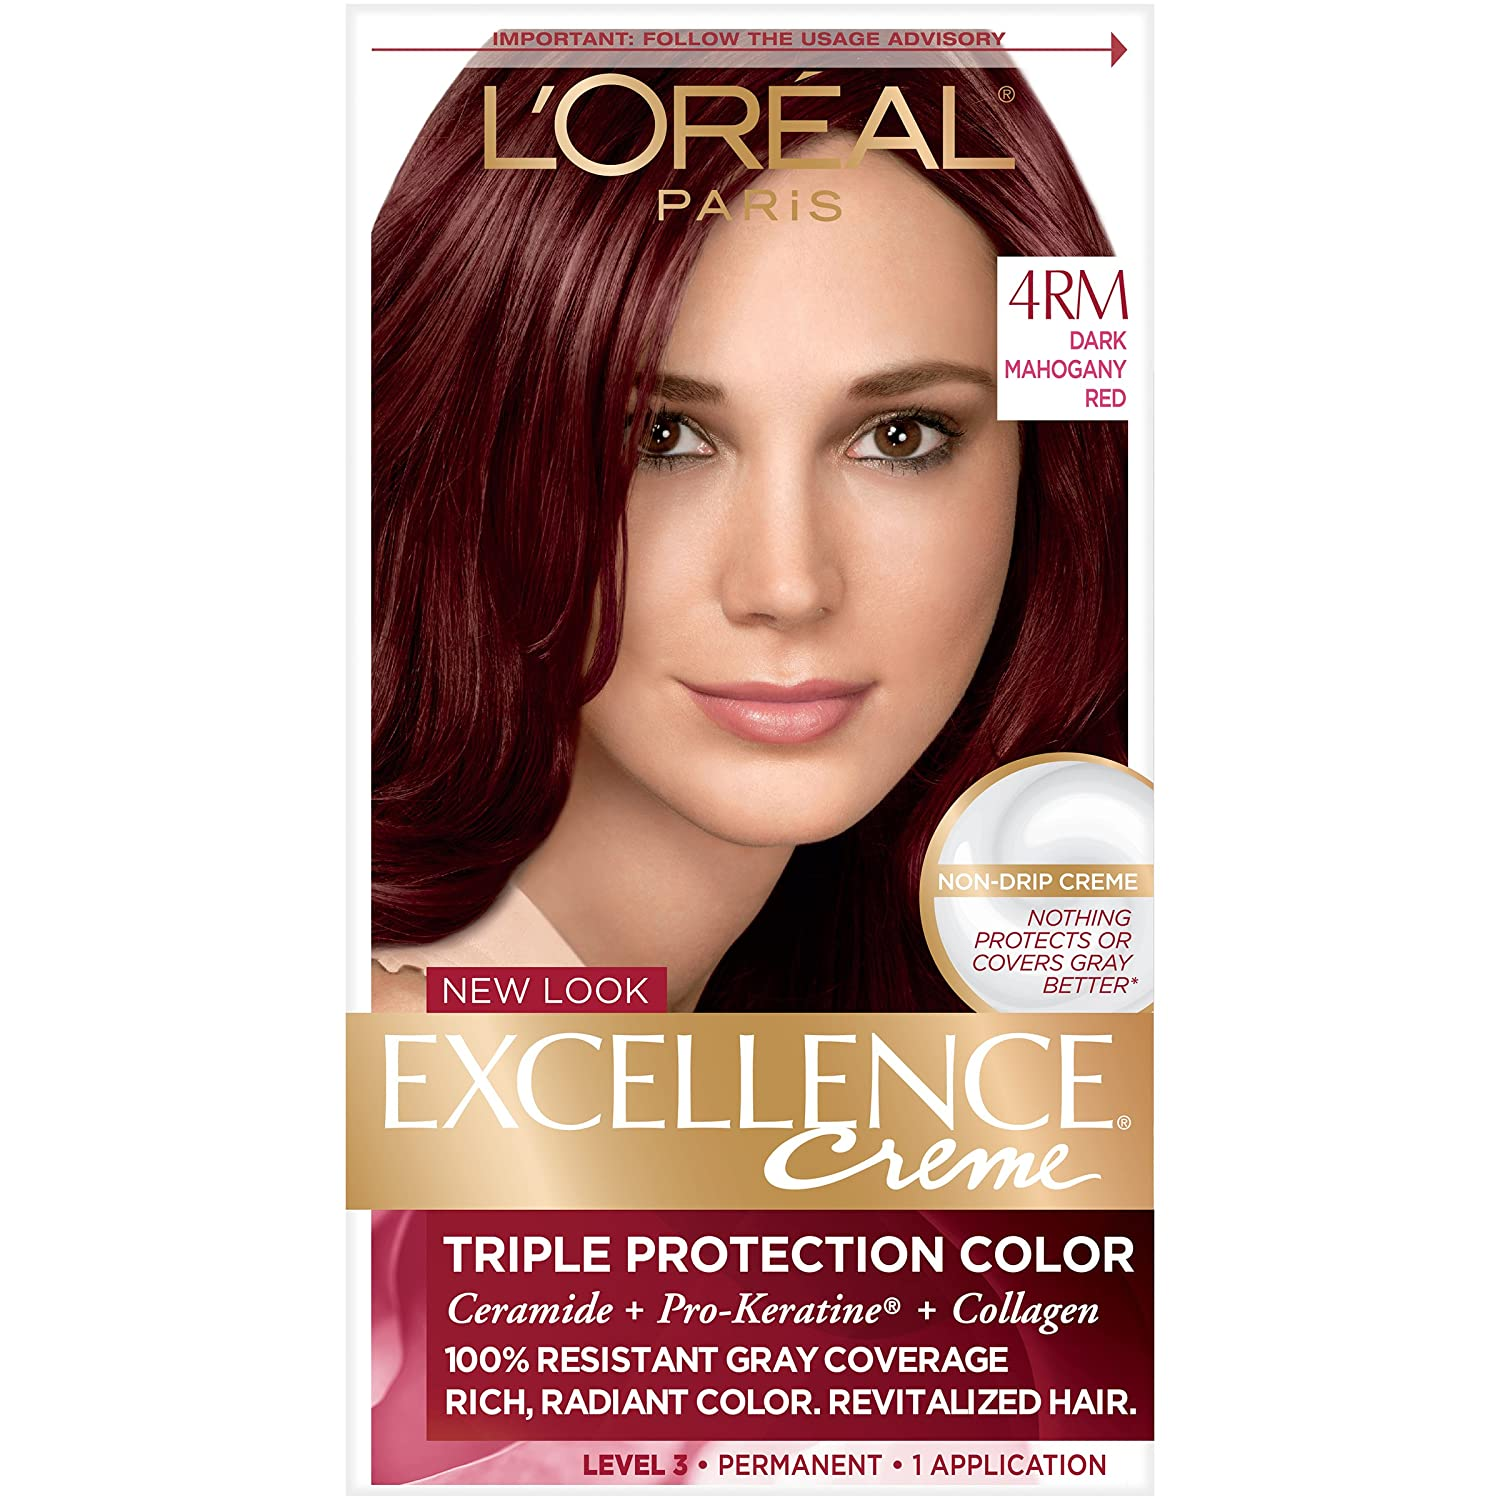 L'Oreal Paris Excellence Creme Permanent Hair Color, 4RM Dark Mahogany Red, 100% Gray Coverage Hair Dye, Pack of 1